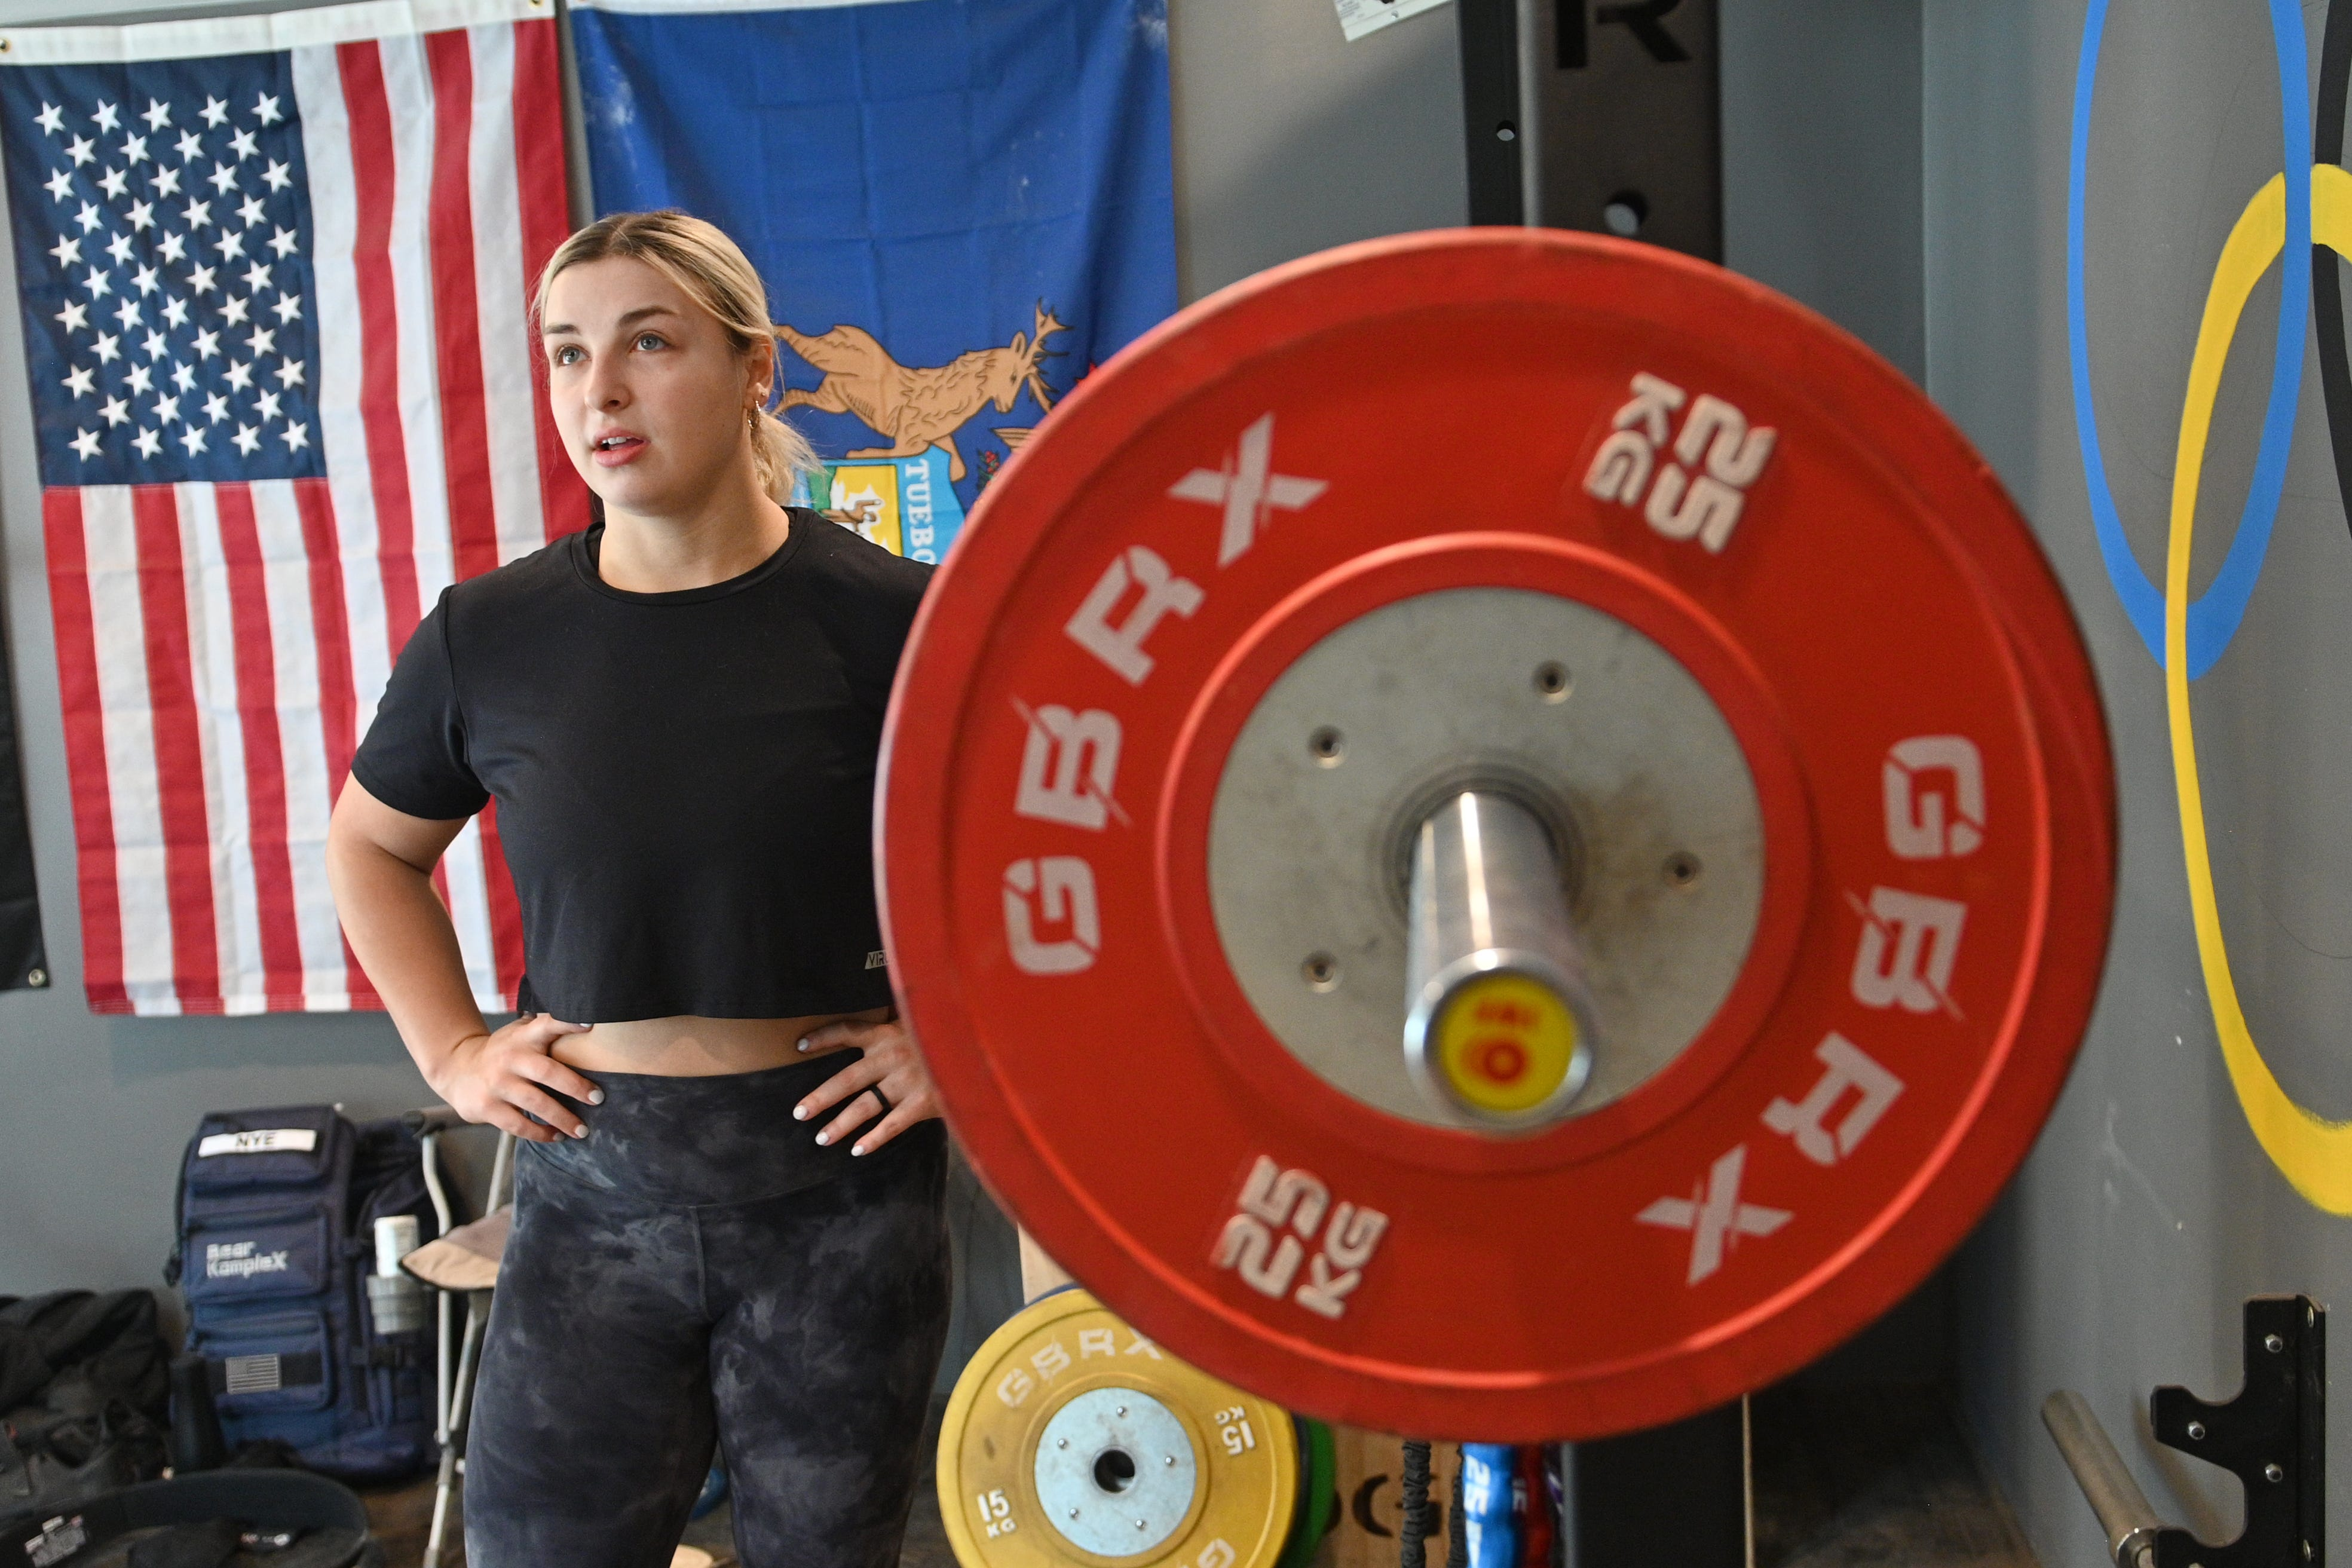 Niyo: For Michigan's Kate Nye, Olympic dream was worth the weight 1